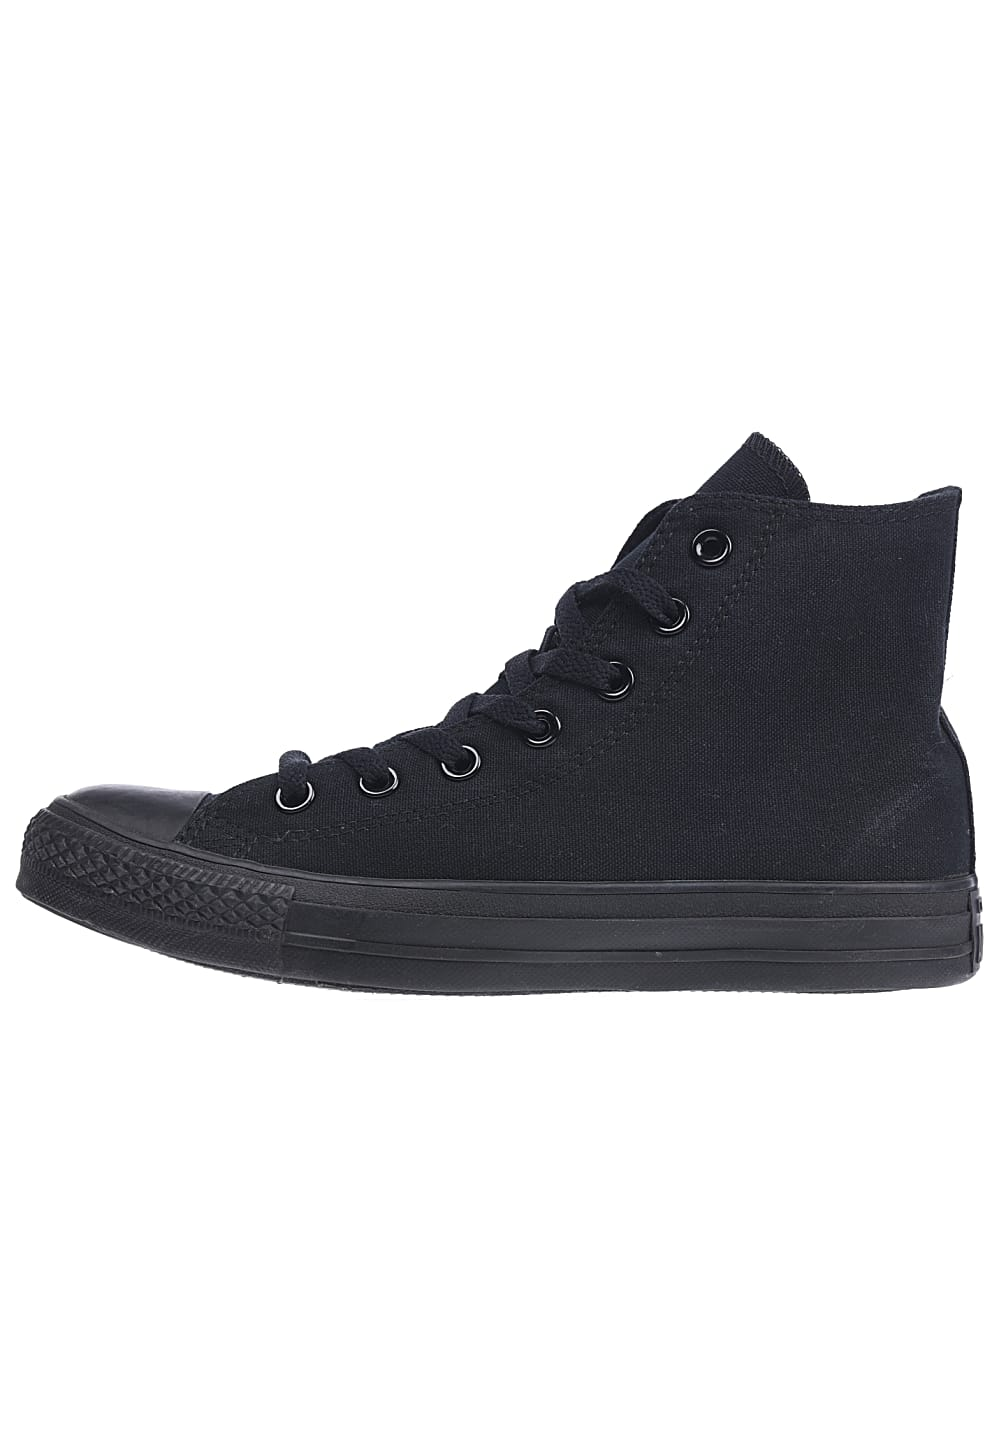 Converse Chuck Taylor All Star Hi - Sneaker - Schwarz - Planet Sports